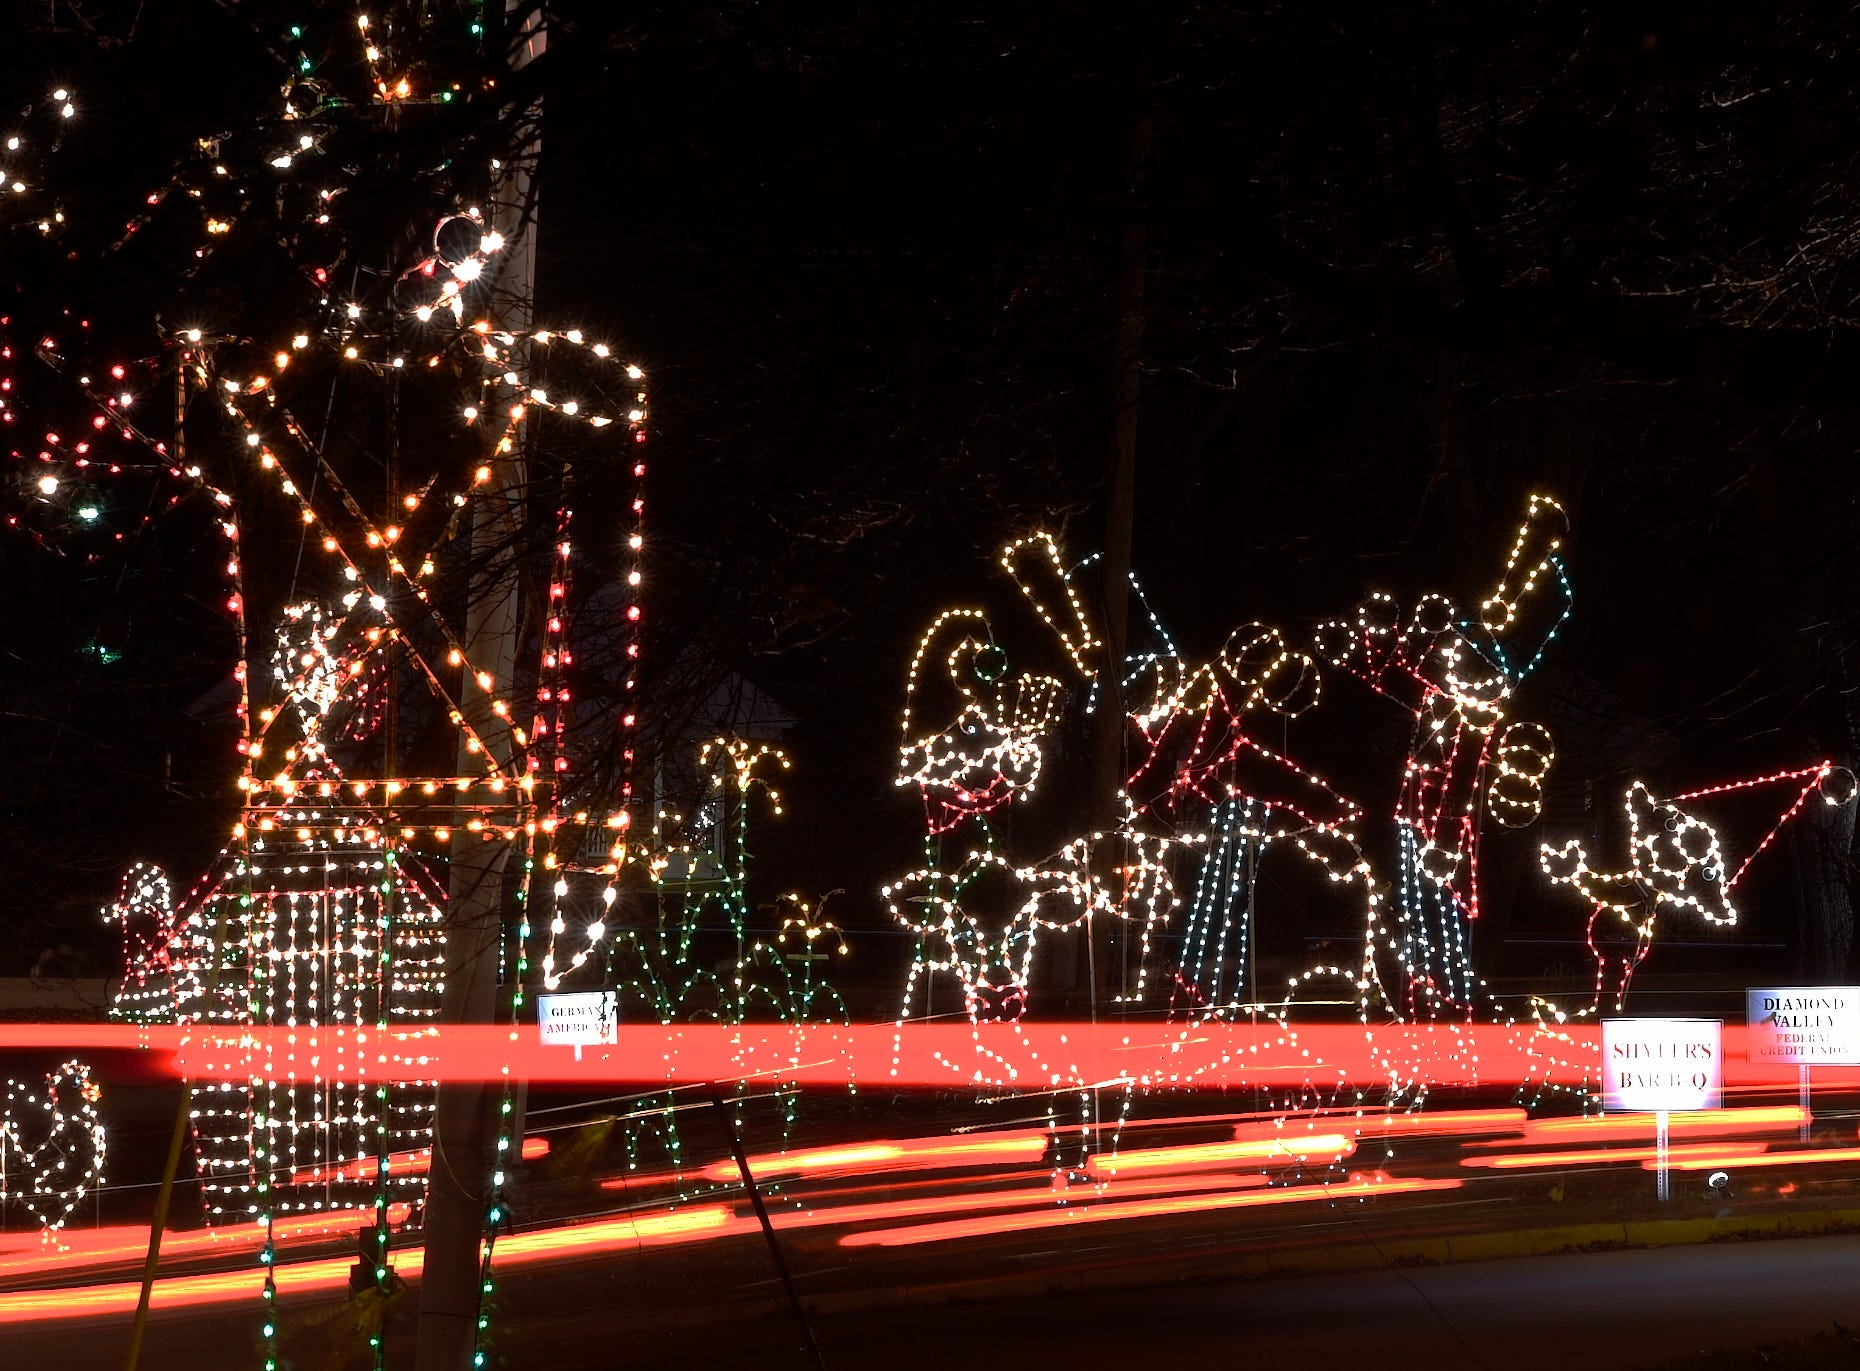 Visitors taillights streak through the Ritzy's Fantasy of Lights in Garvin Park. The light display, which raised more than $145,000 last year for Easter Seals, will remain up through Jan. 1, New Years night.